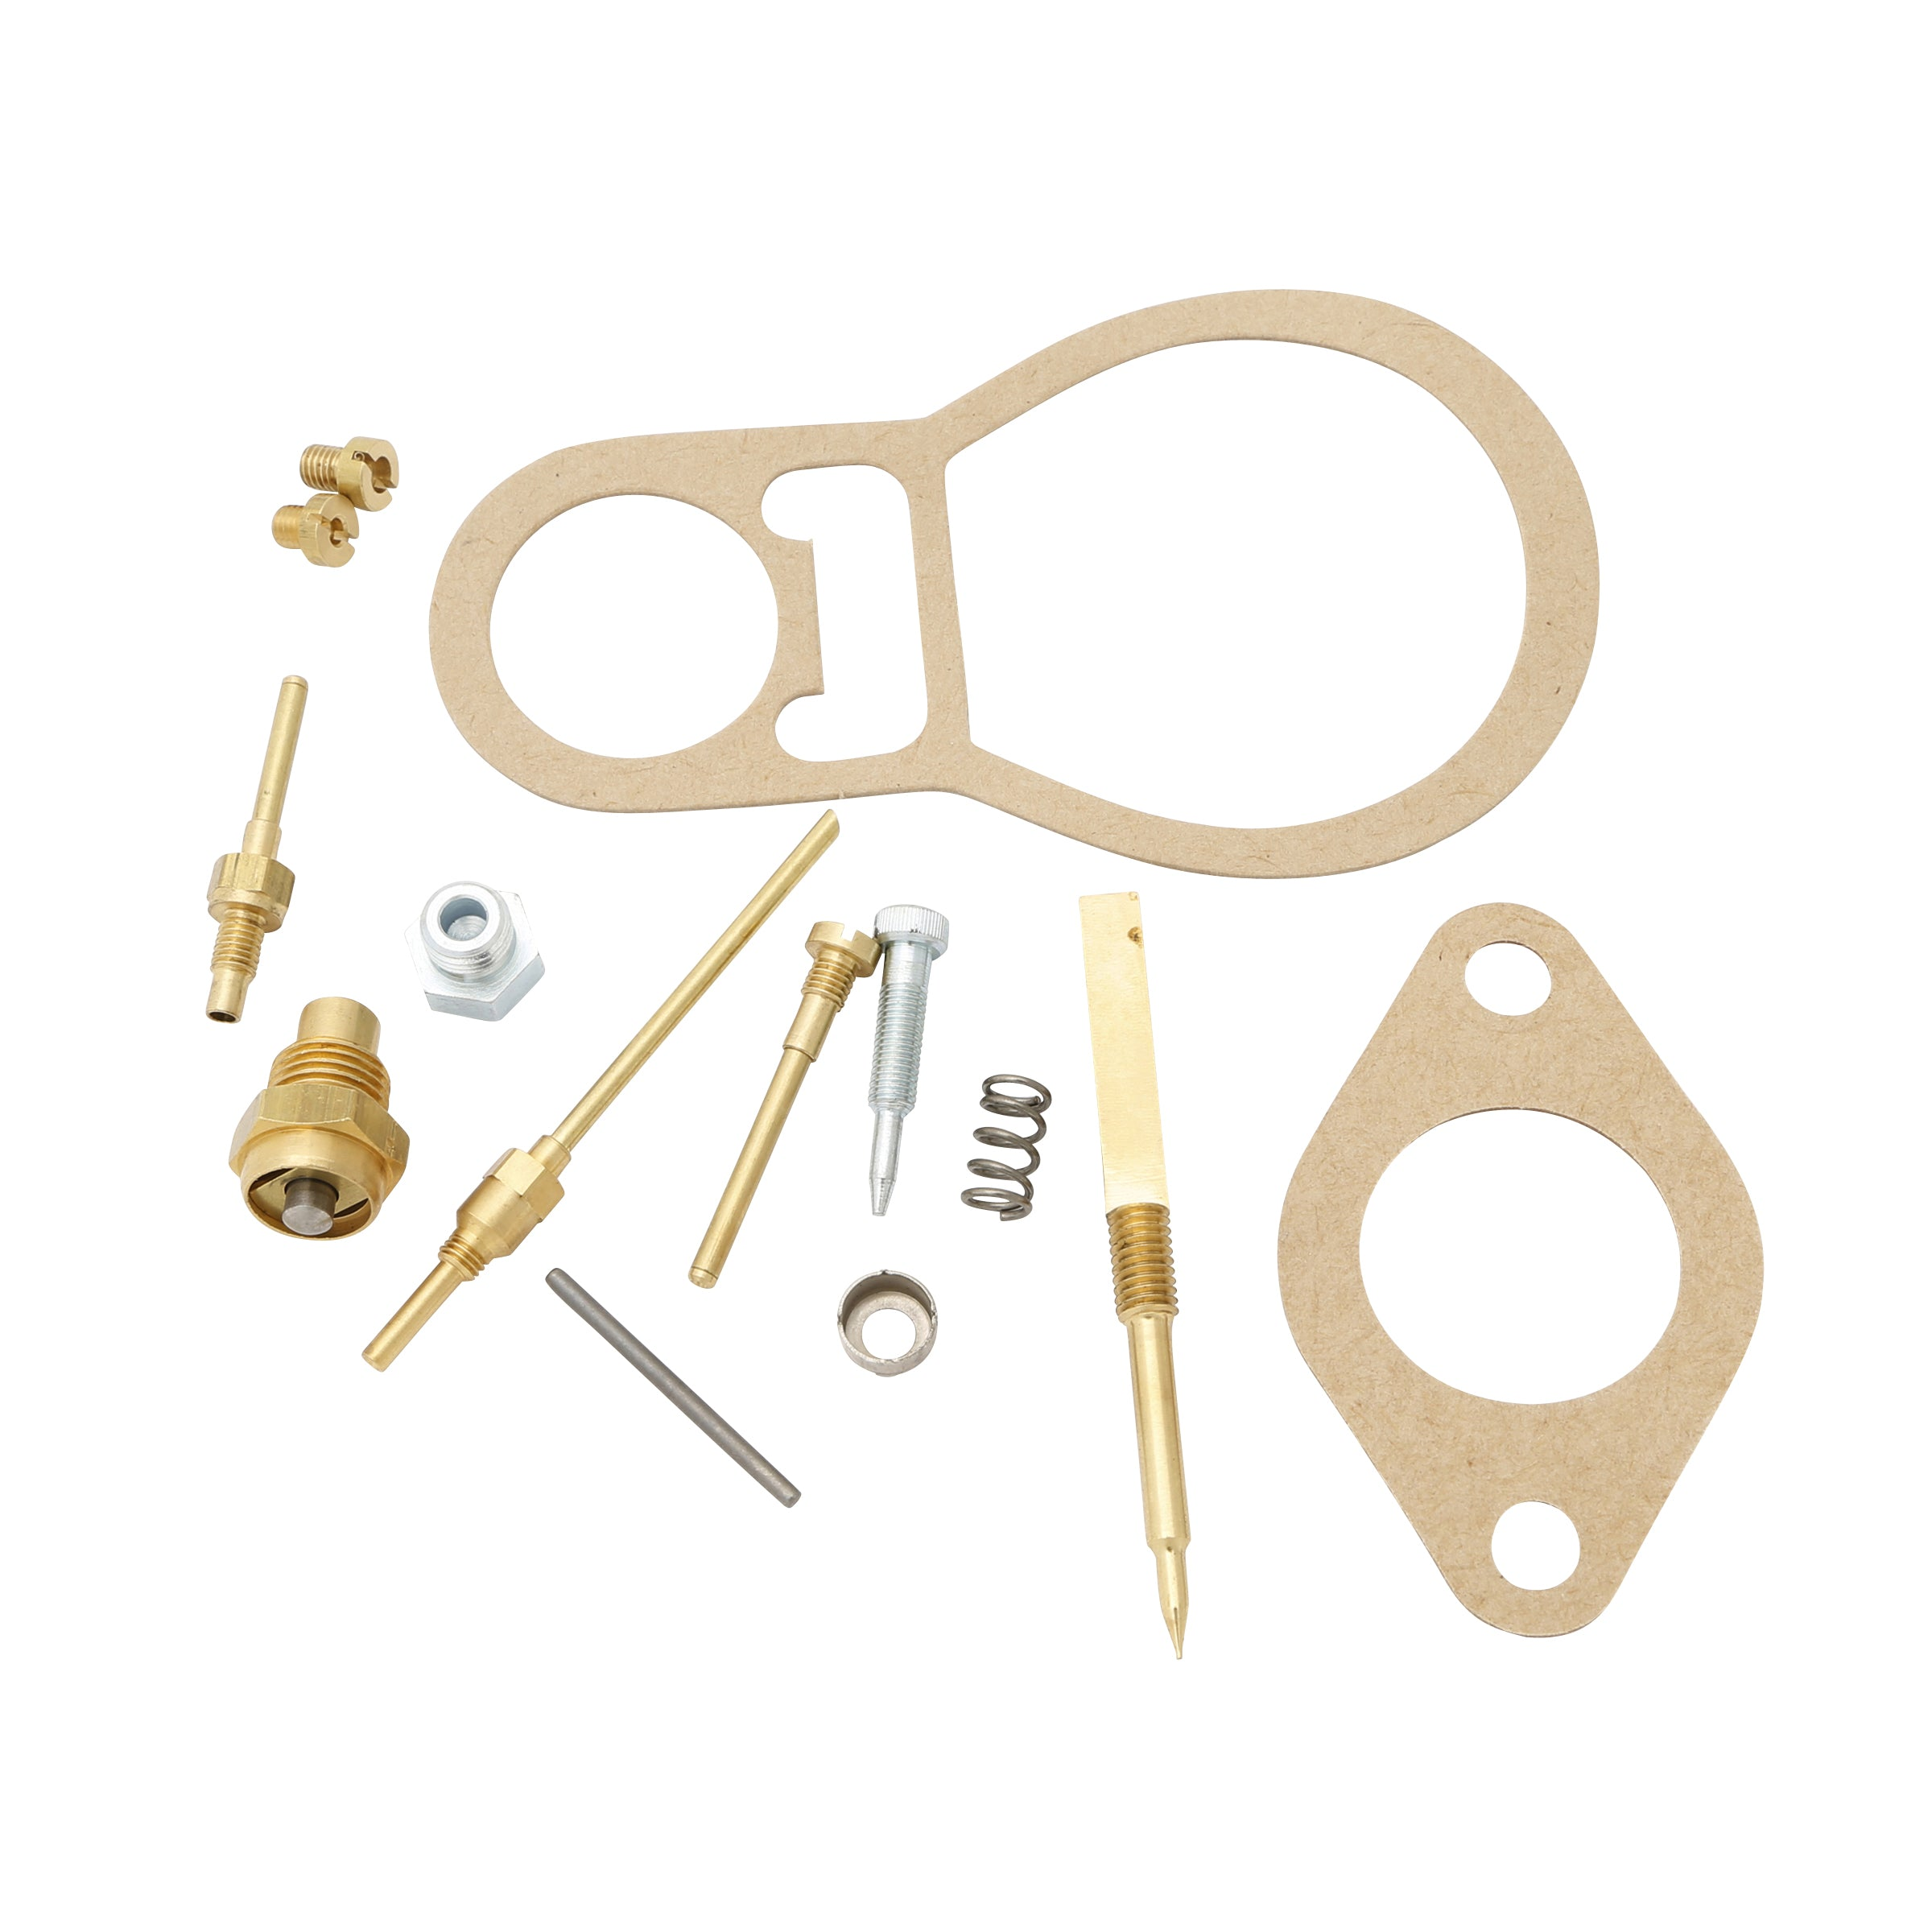 Carburetor Rebuild Kit (Zenith) • 1928-34